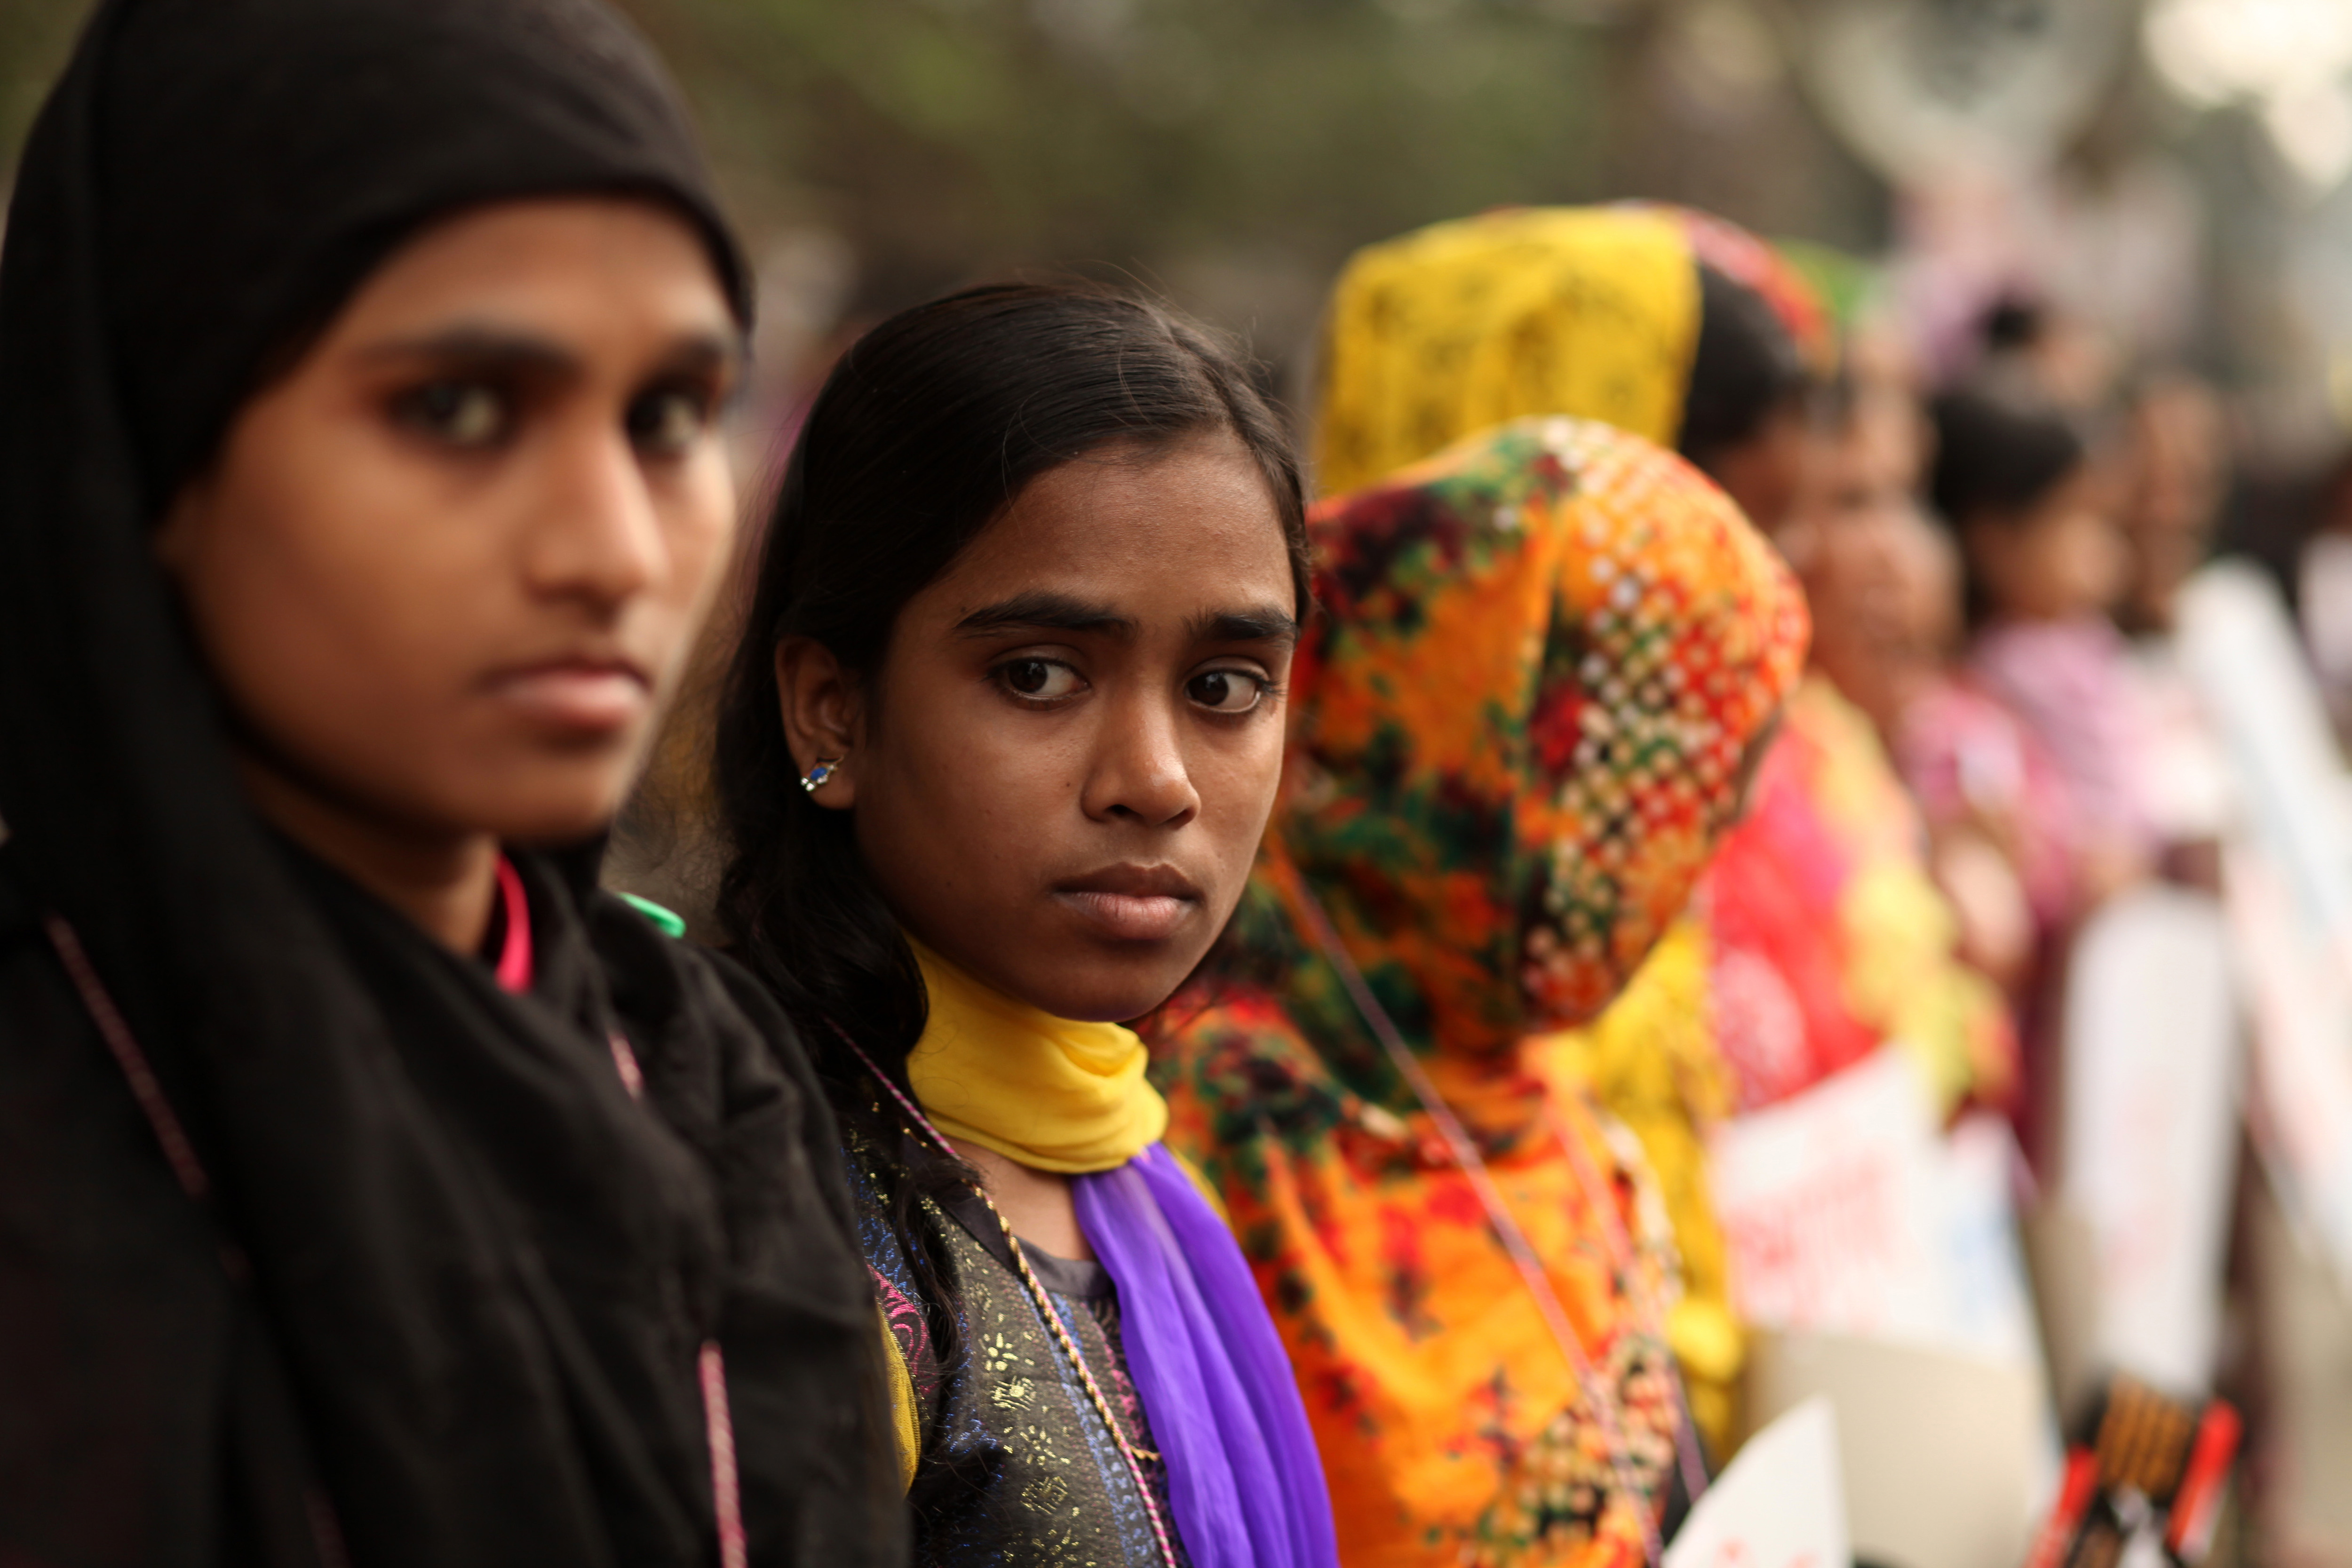 Woman organizations protest against child marriage in front of Press Club in Dhaka, Bangladesh, on Dec. 3, 2014.